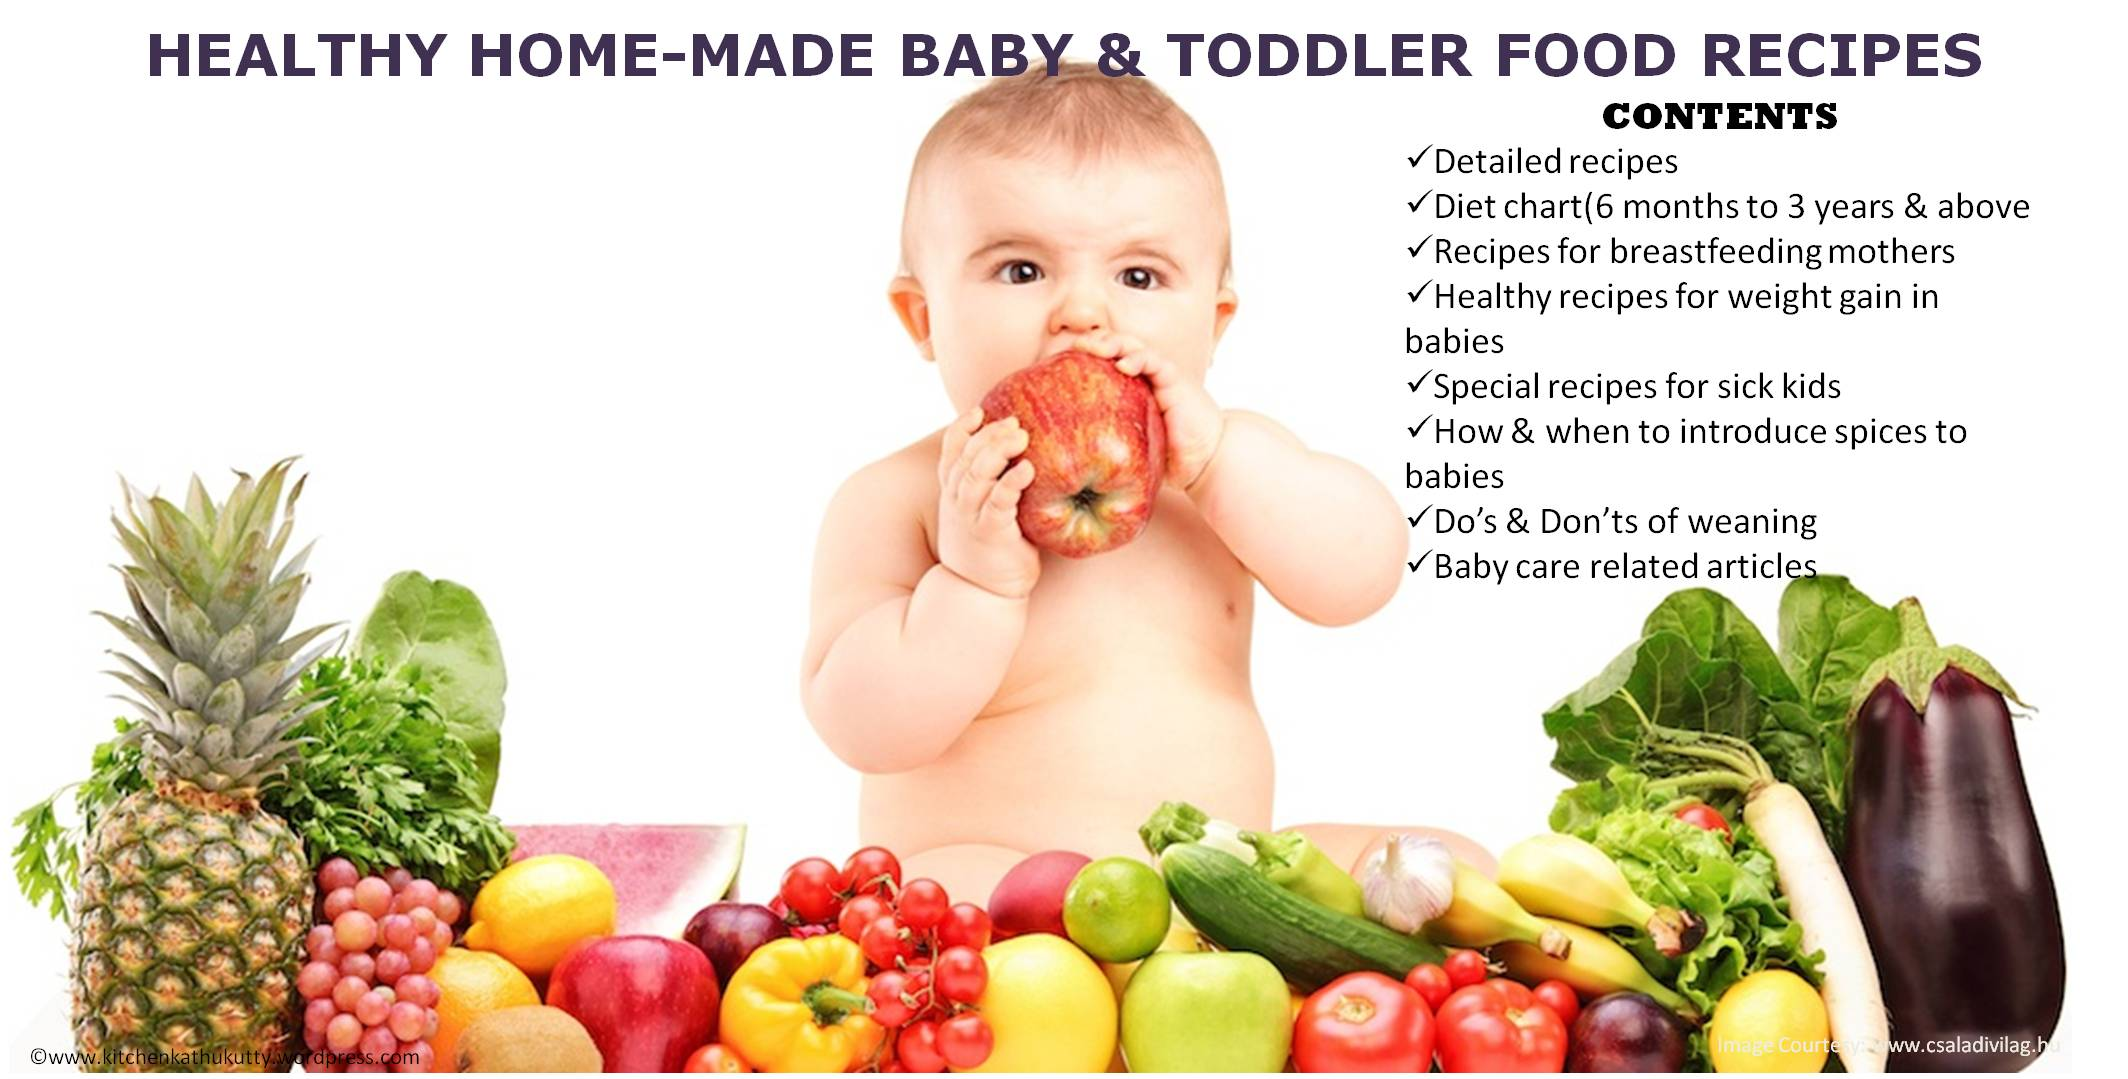 homemade baby food recipes-1